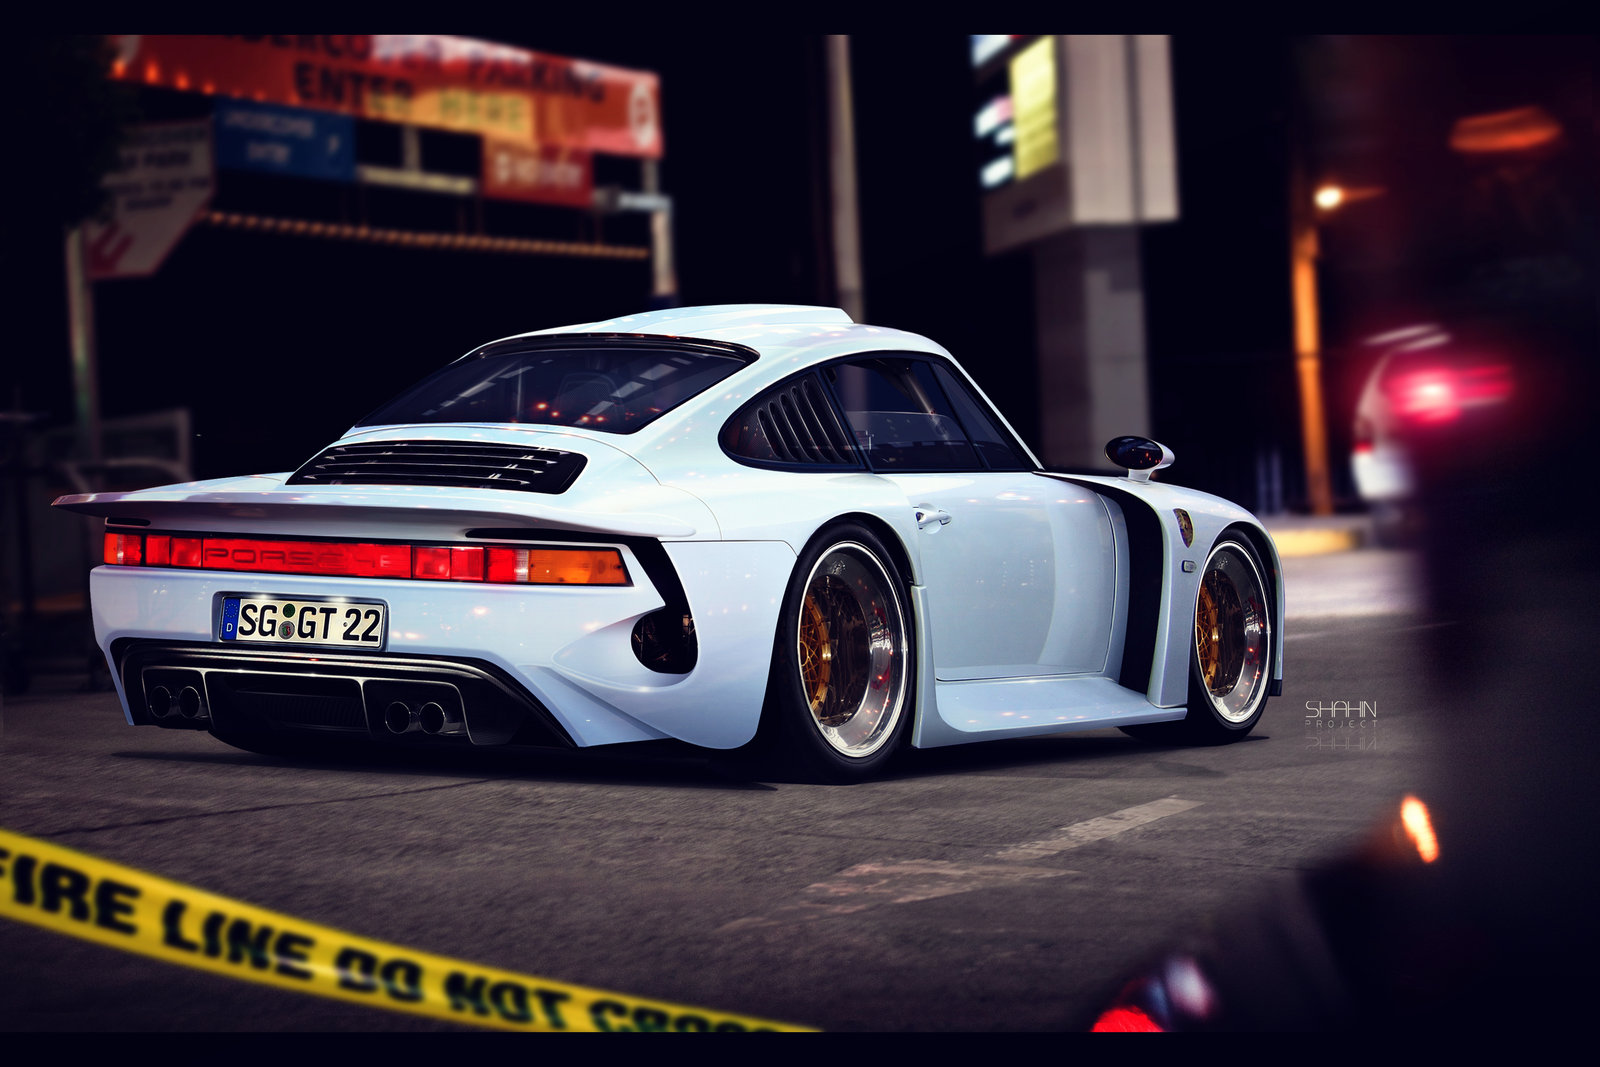 4 porsche 959 hd wallpapers backgrounds wallpaper abyss. Black Bedroom Furniture Sets. Home Design Ideas